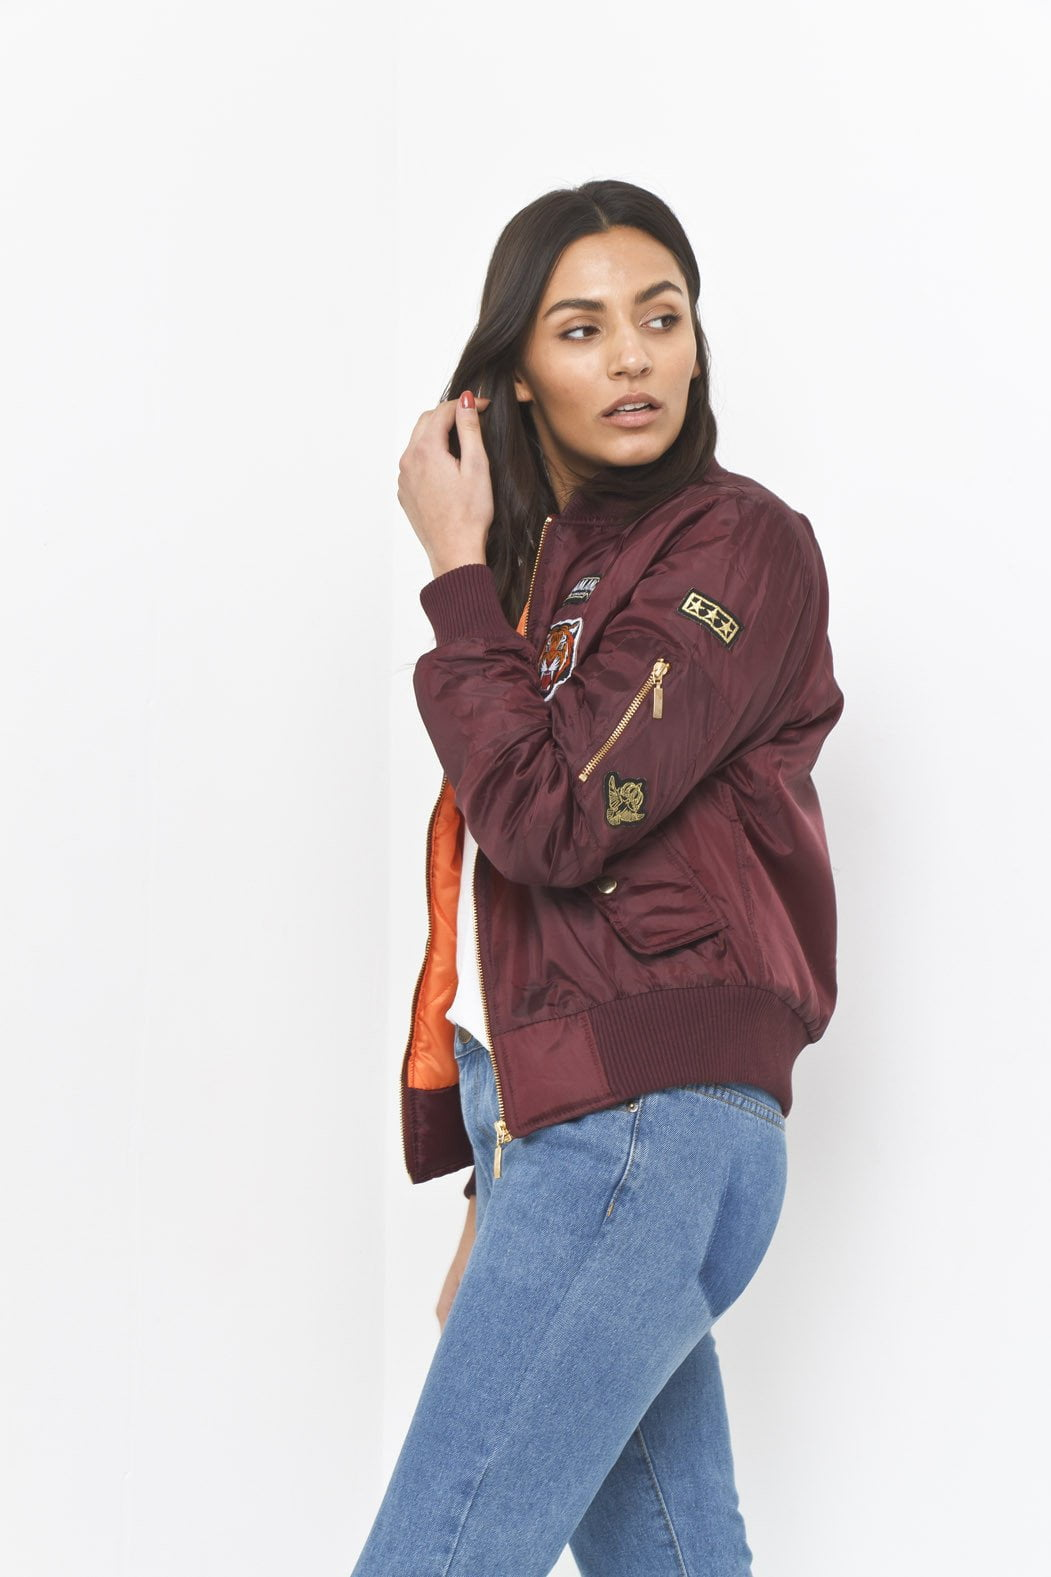 South Beach Padded Bomber Jacket With Badges In Burgundy - Liquor N Poker  Liquor N Poker